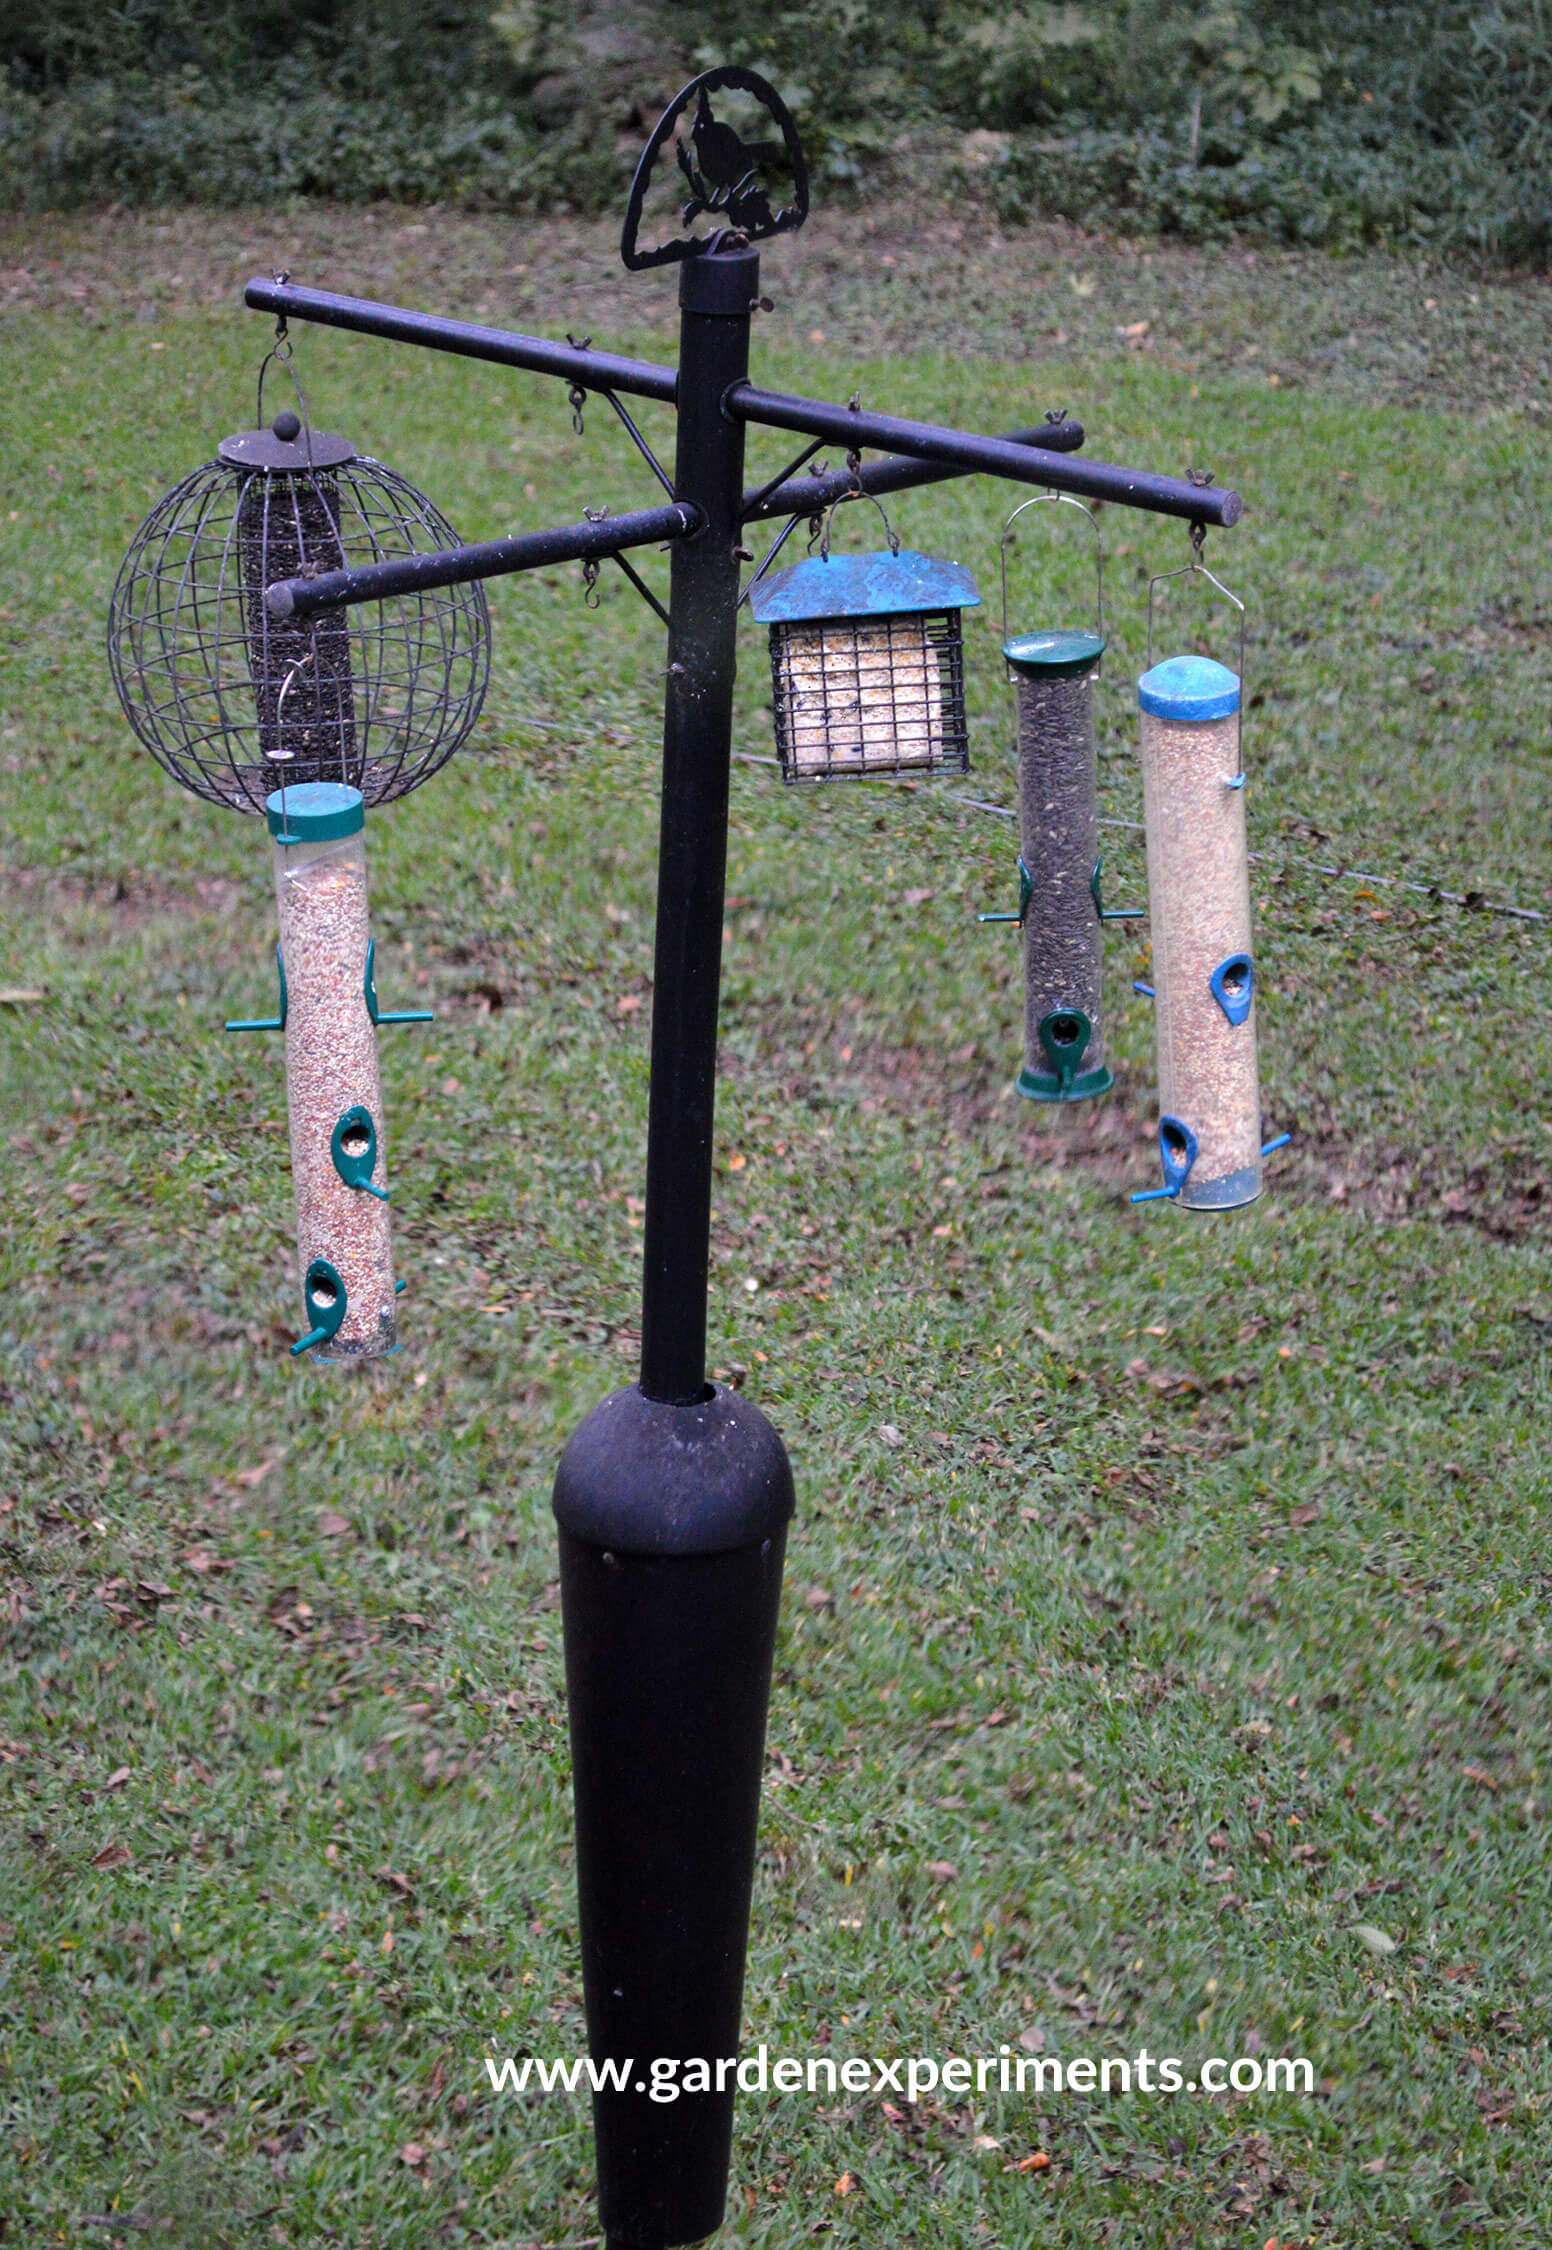 there squirrel keep loving bird will feeder corn feeding in entertained feeders the many cool and off them that from now so squirrels backyard orig away are birds